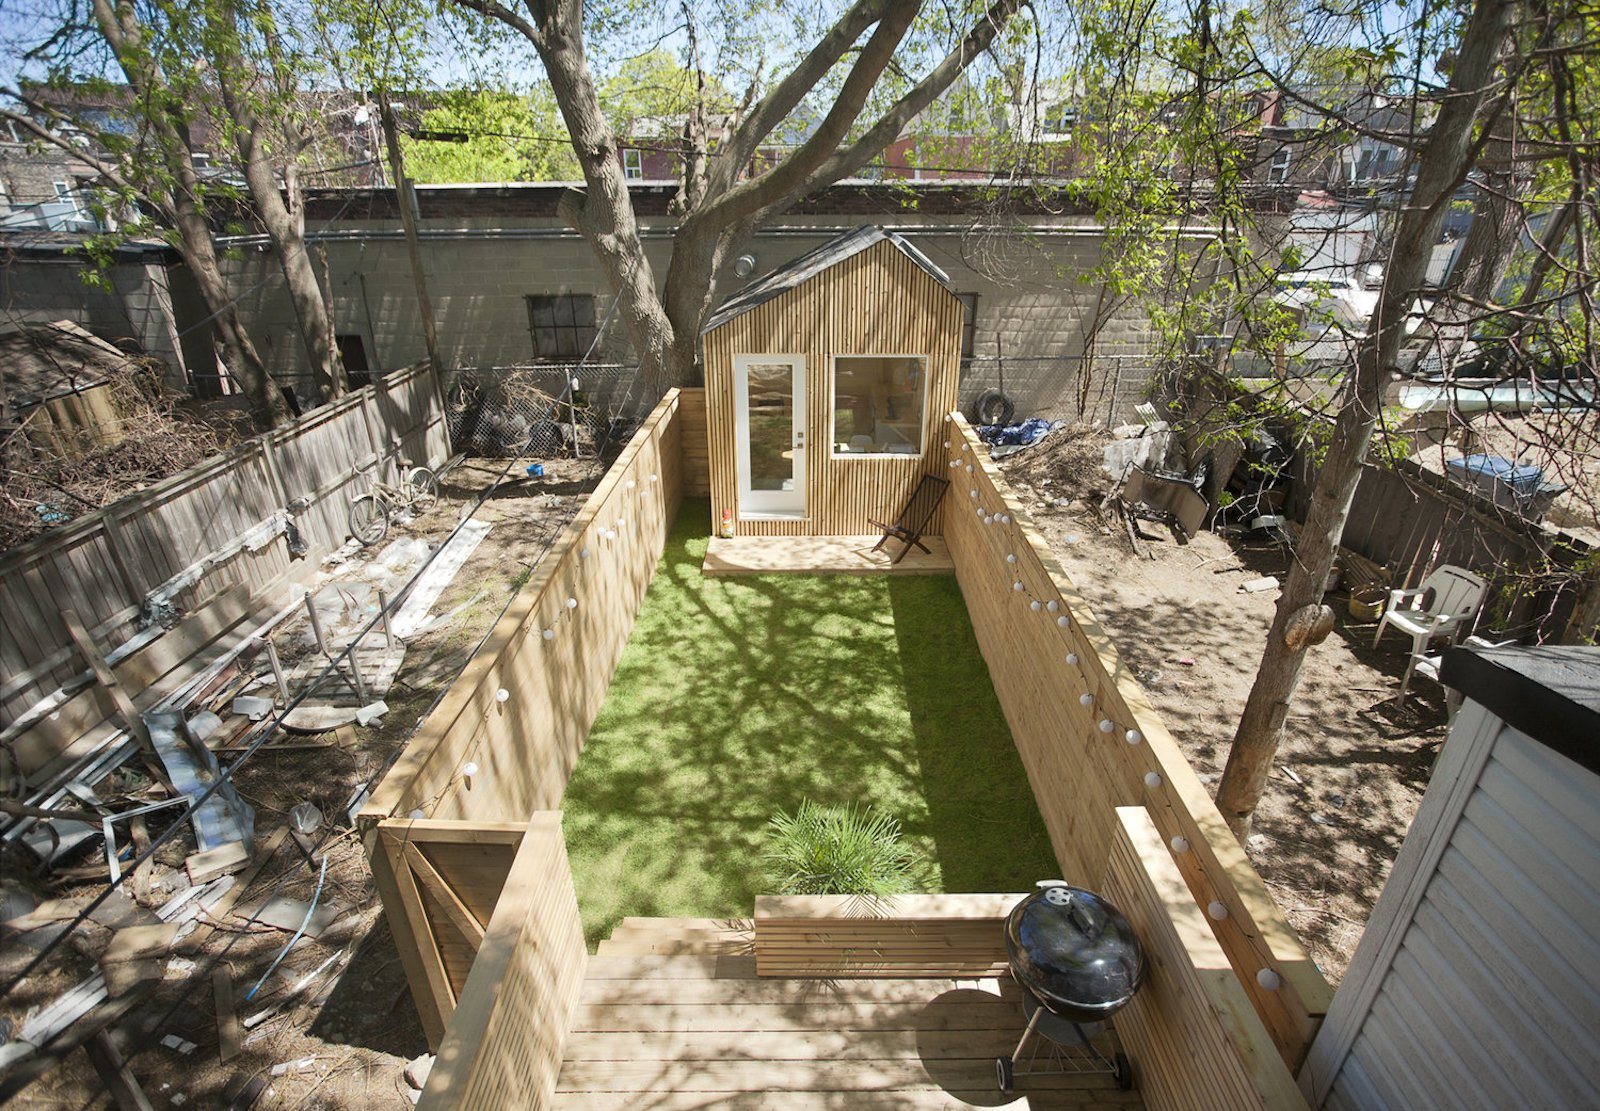 Outdoor, Back Yard, Grass, Trees, Small Patio, Porch, Deck, Wood Patio, Porch, Deck, Decking Patio, Porch, Deck, Horizontal Fences, Wall, Wood Fences, Wall, and Hanging Lighting  Photo 3 of 10 in This Architect's Tiny Studio Is the Ultimate Backyard Workspace